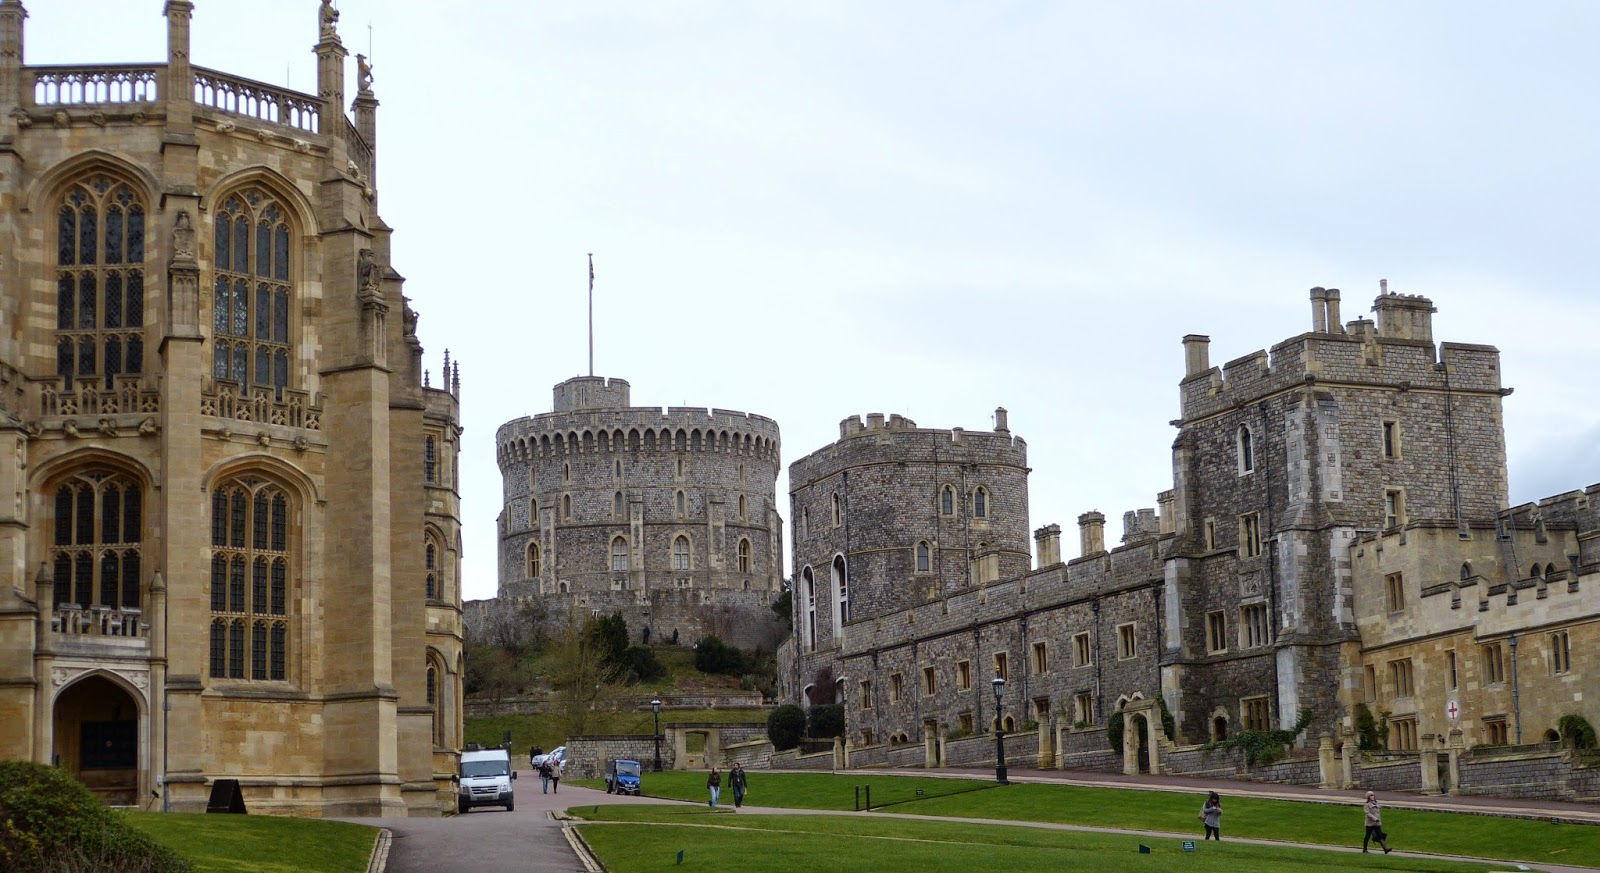 Lower Ward, Windsor Castle, showing St George's Chapel on the left